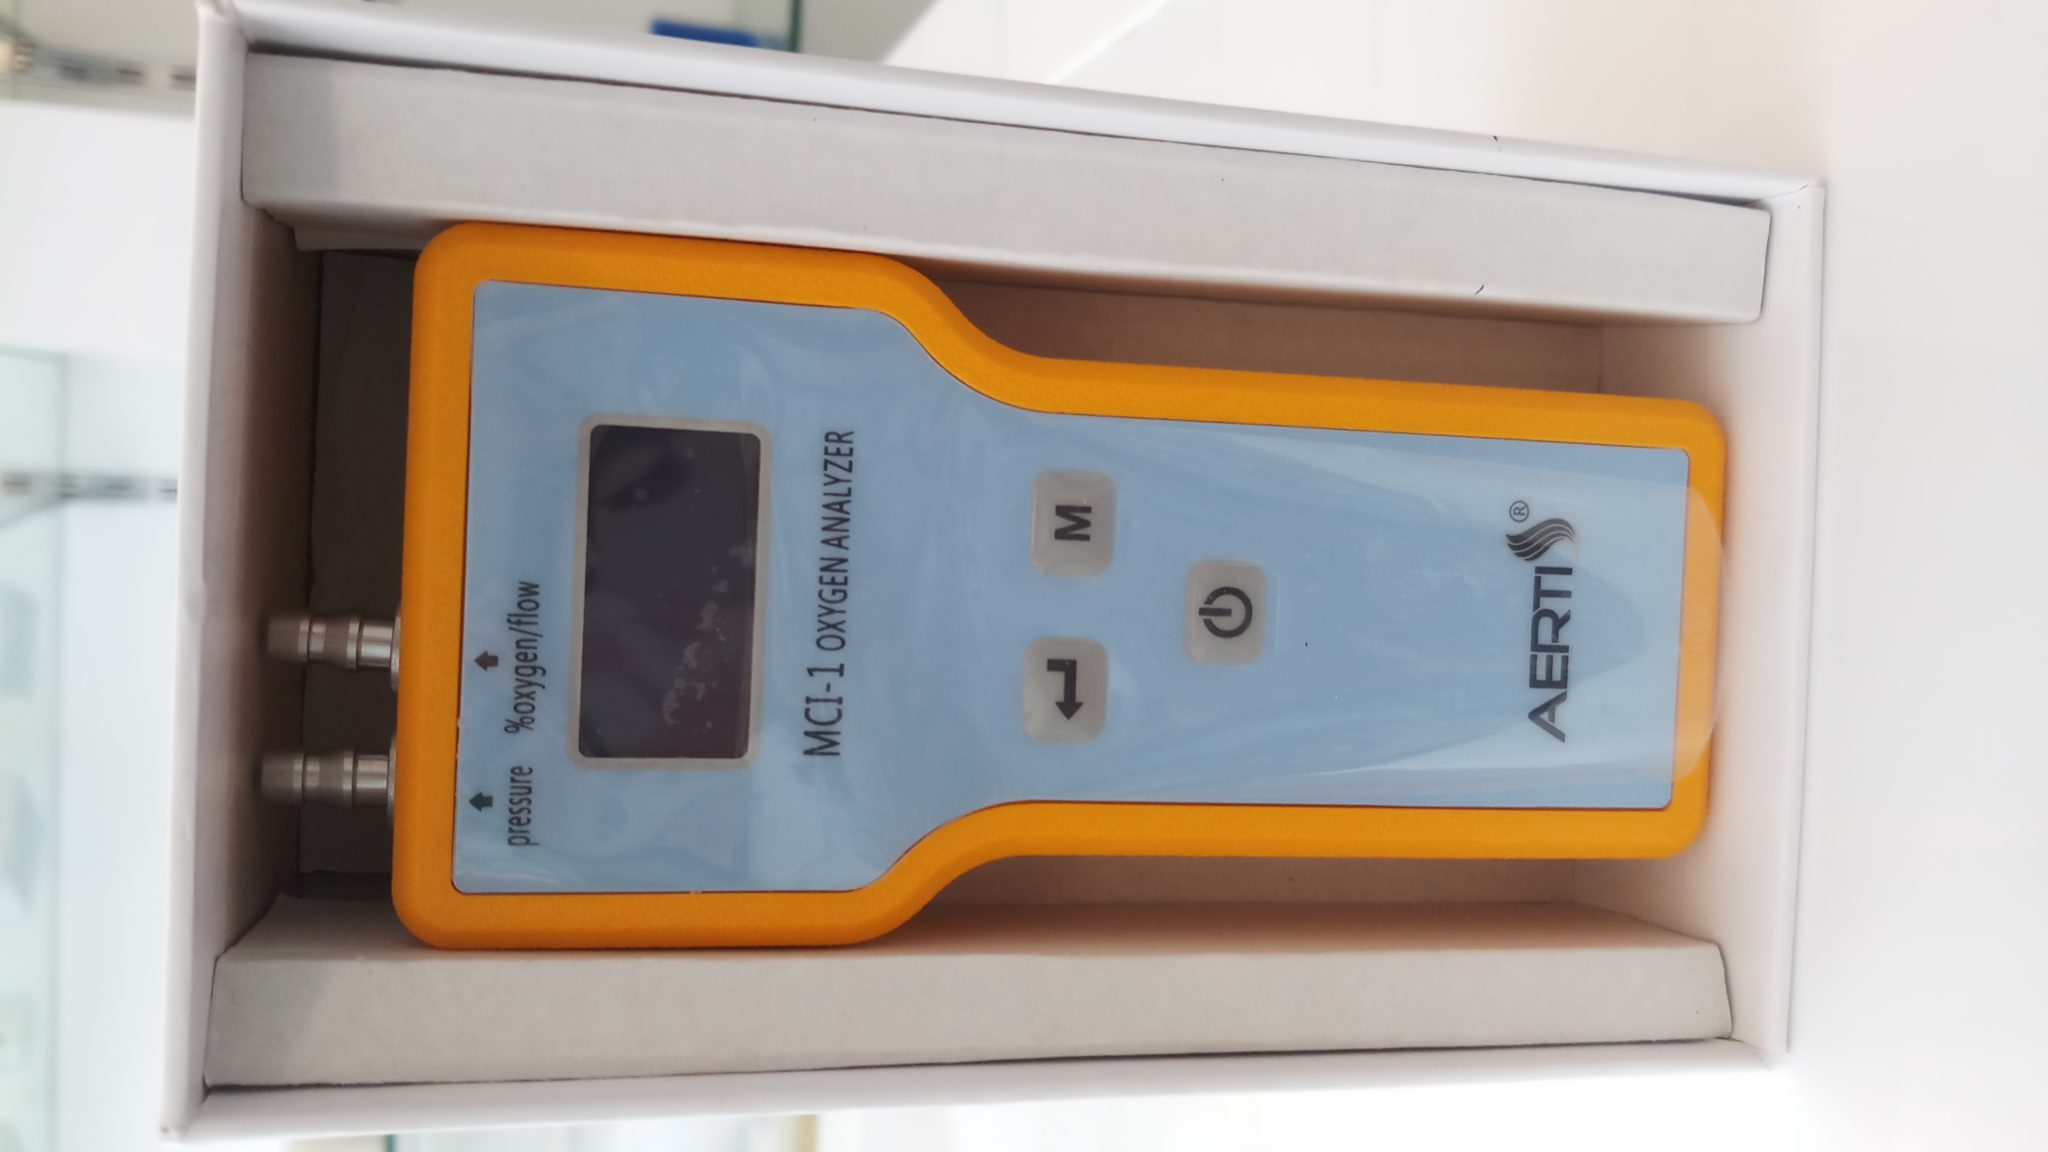 Oxygen analyzer